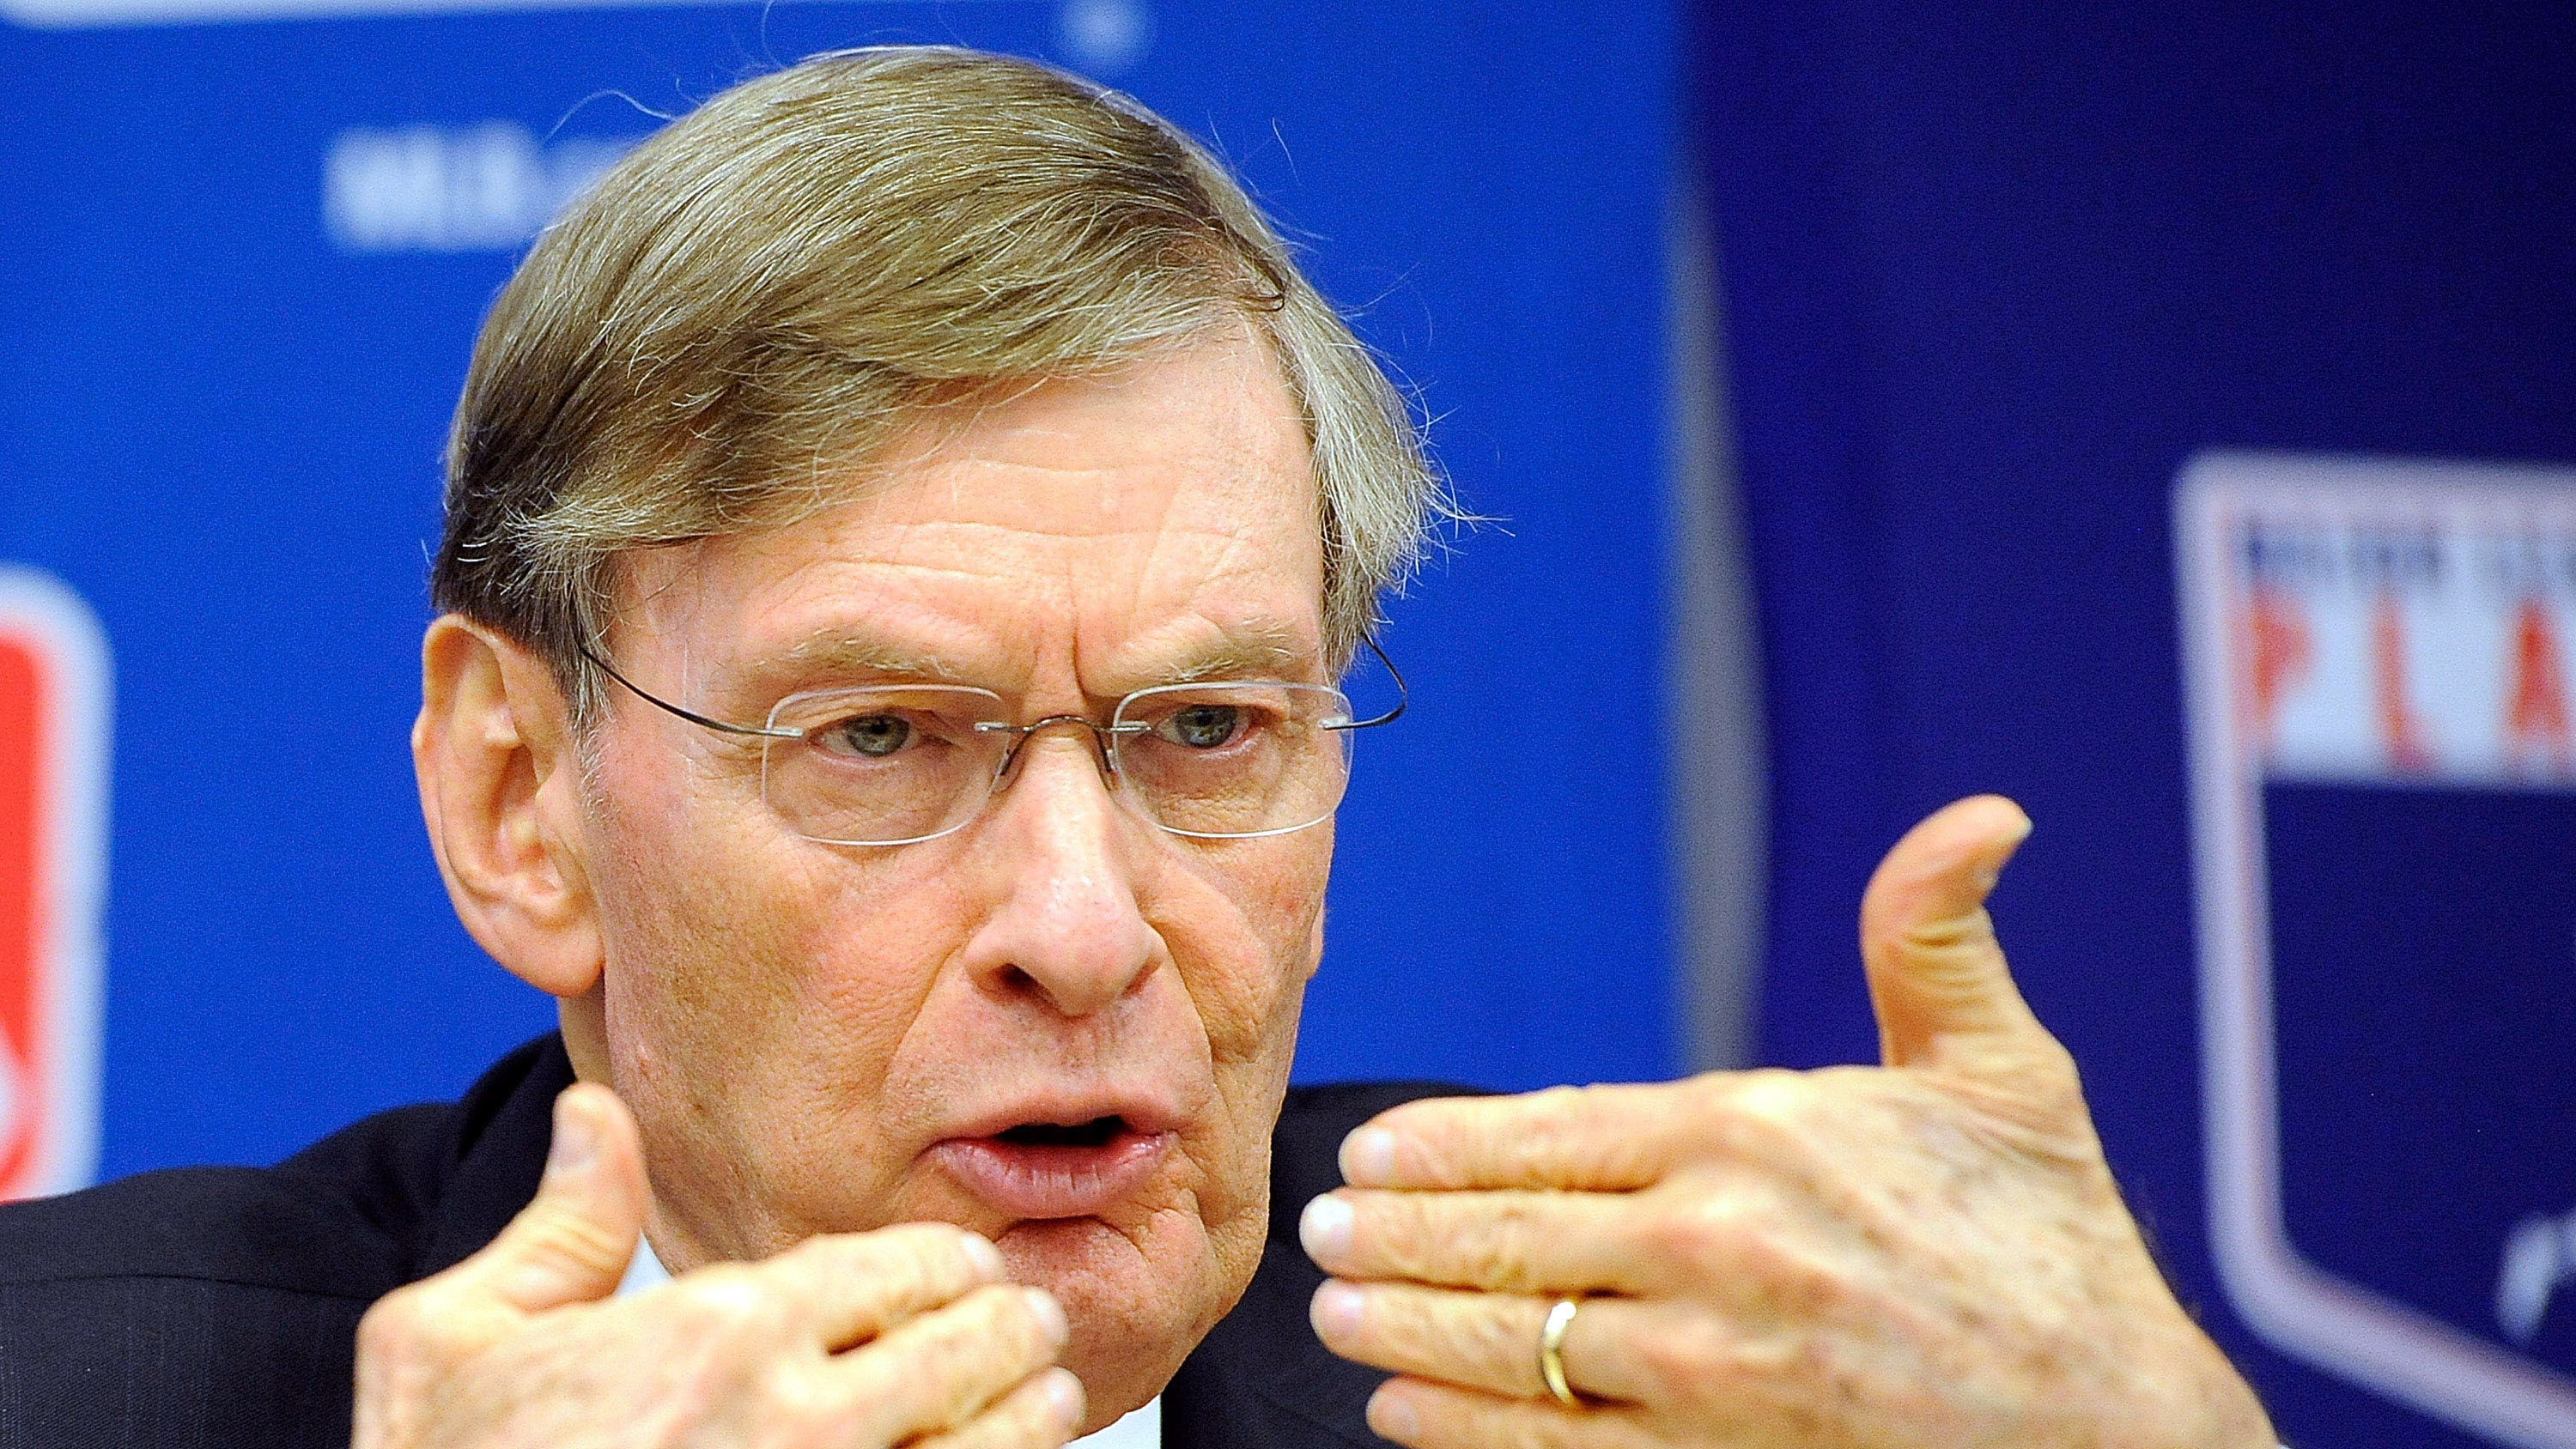 Commissioner Bud Selig reportedly wants to expand MLB's international brand even more.